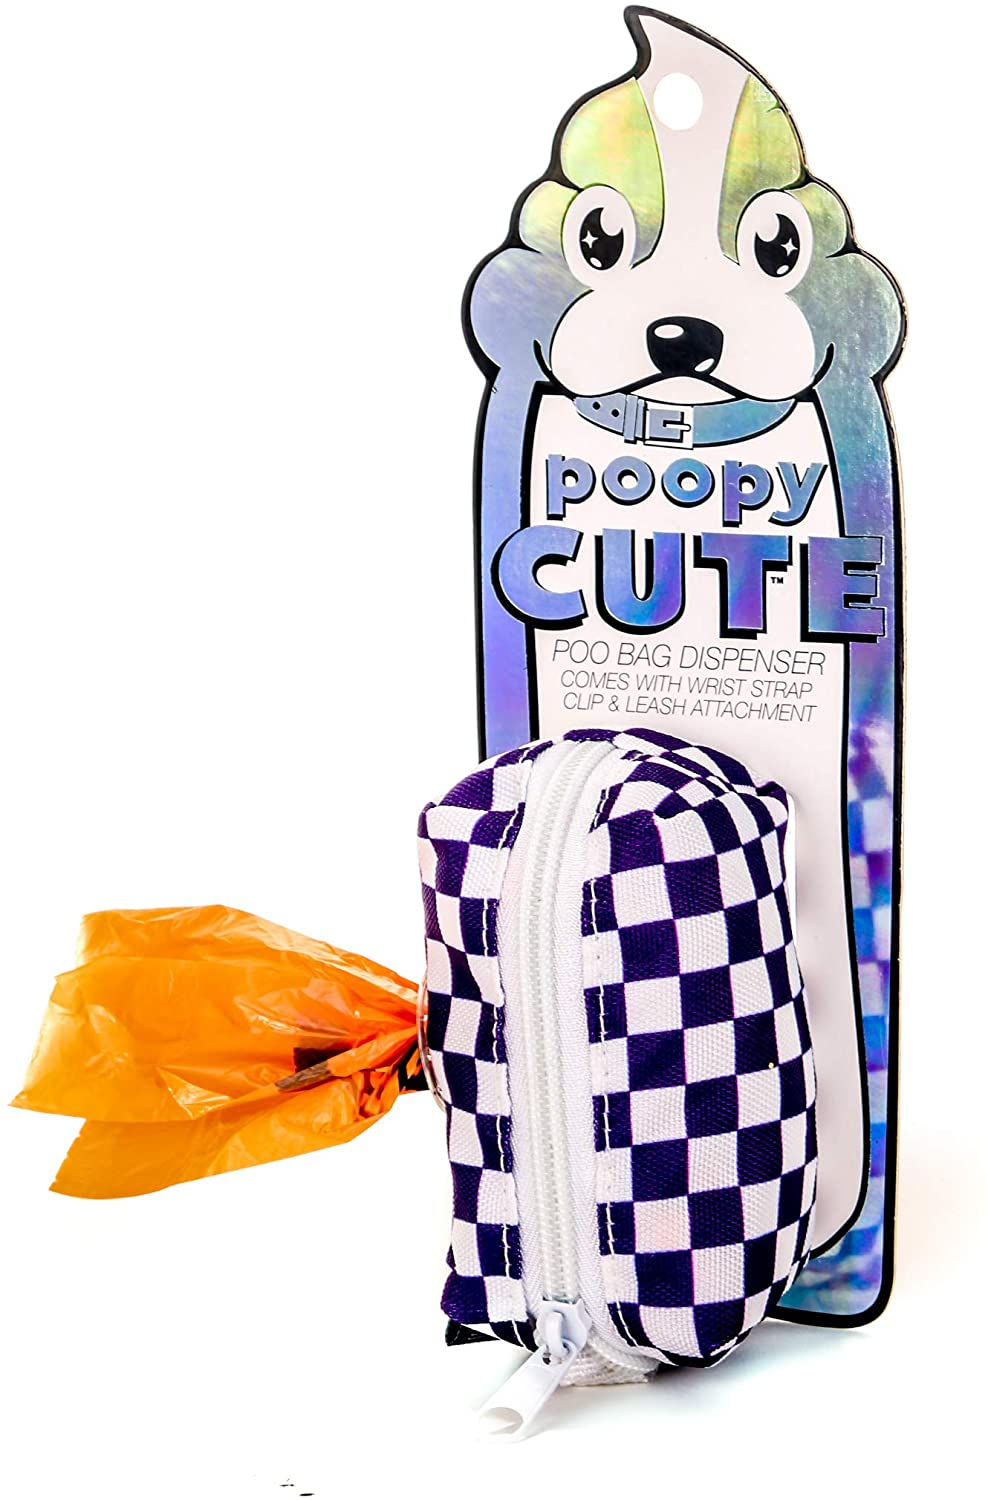 Fydelity poopyCUTE- Doggy Poop Waste Bag Dispenser for Fashionably Cute Owner and Dog Breed,Puppy Supply|Women Luxury Fashion Style, On Leash Holder Clip for Bag/Travel/Walking/Treat/Key: